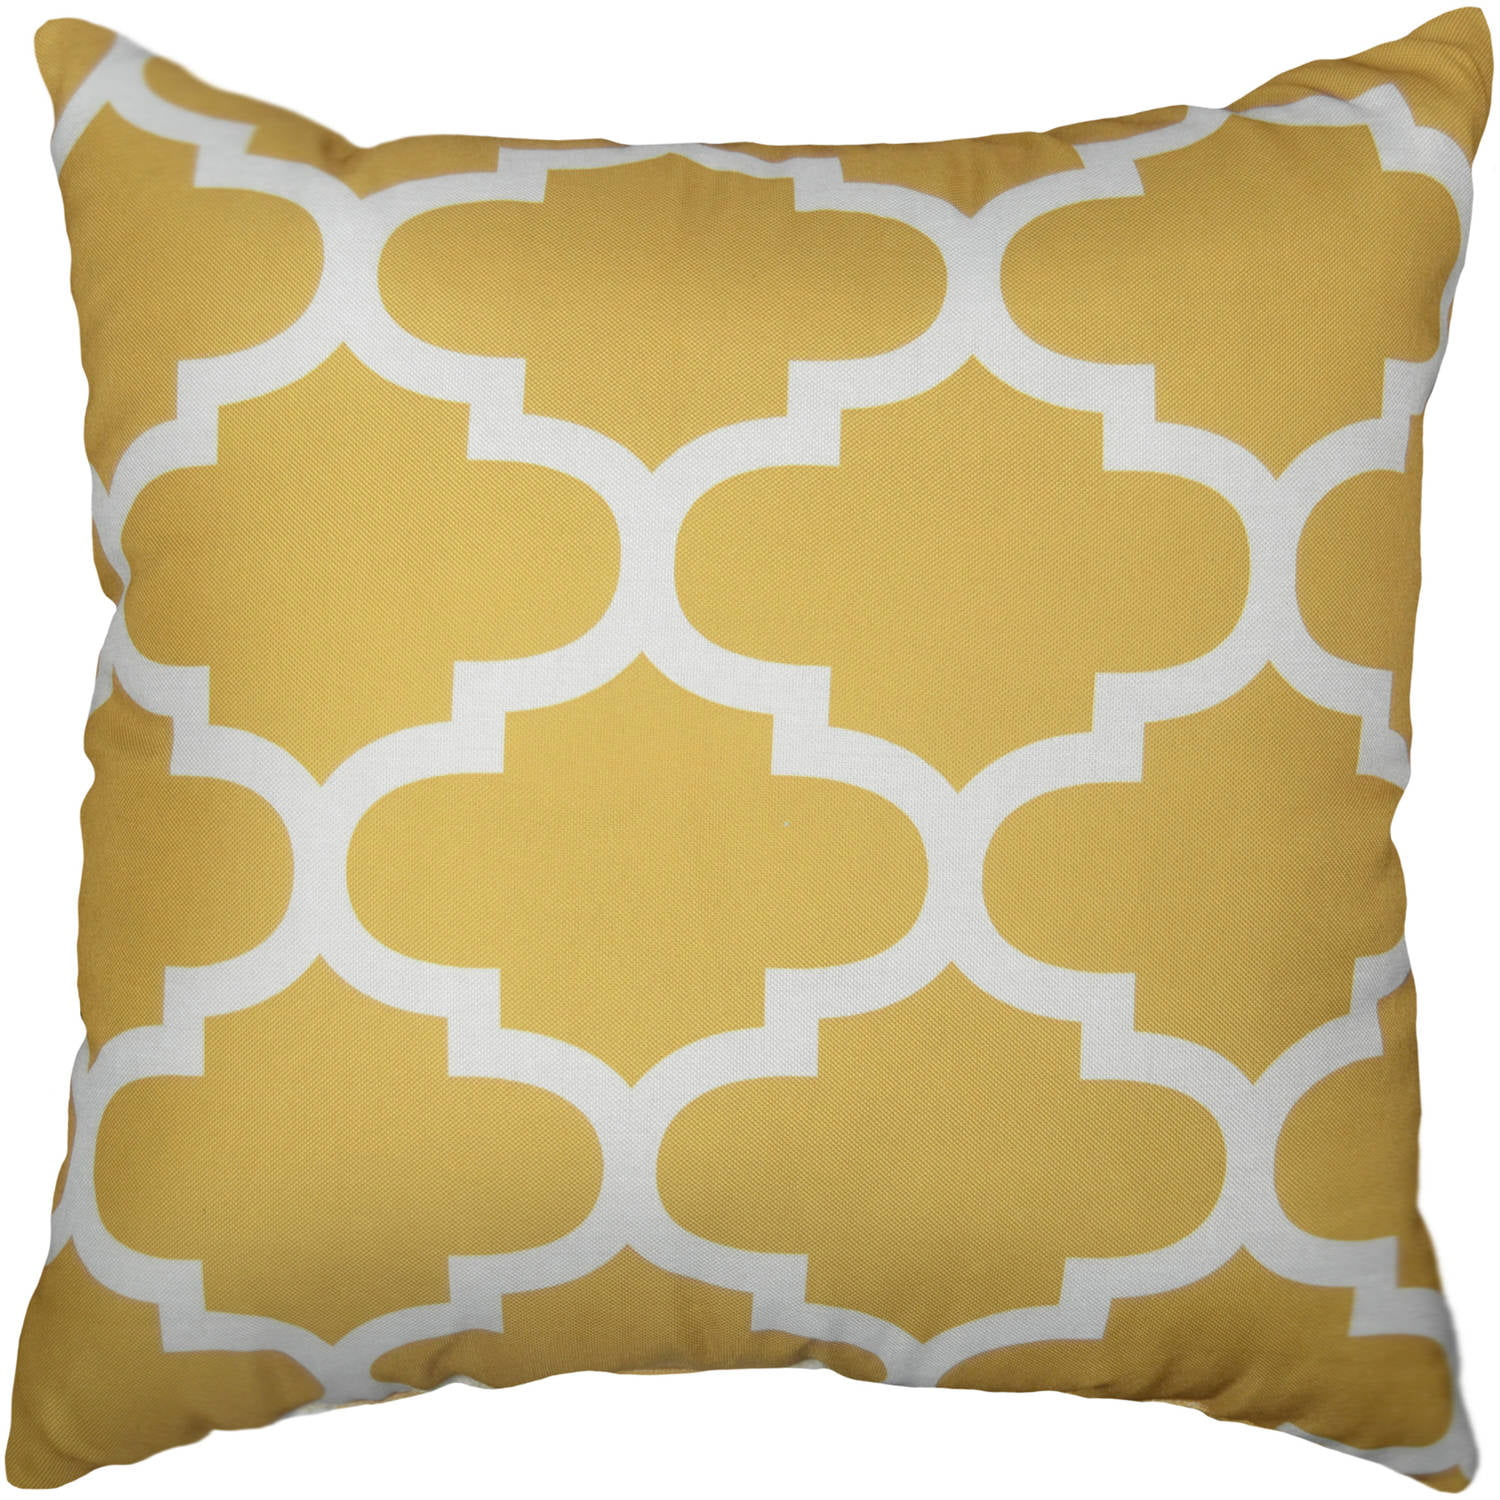 Mainstays Fretwork Decorative Pillow   Walmart.com